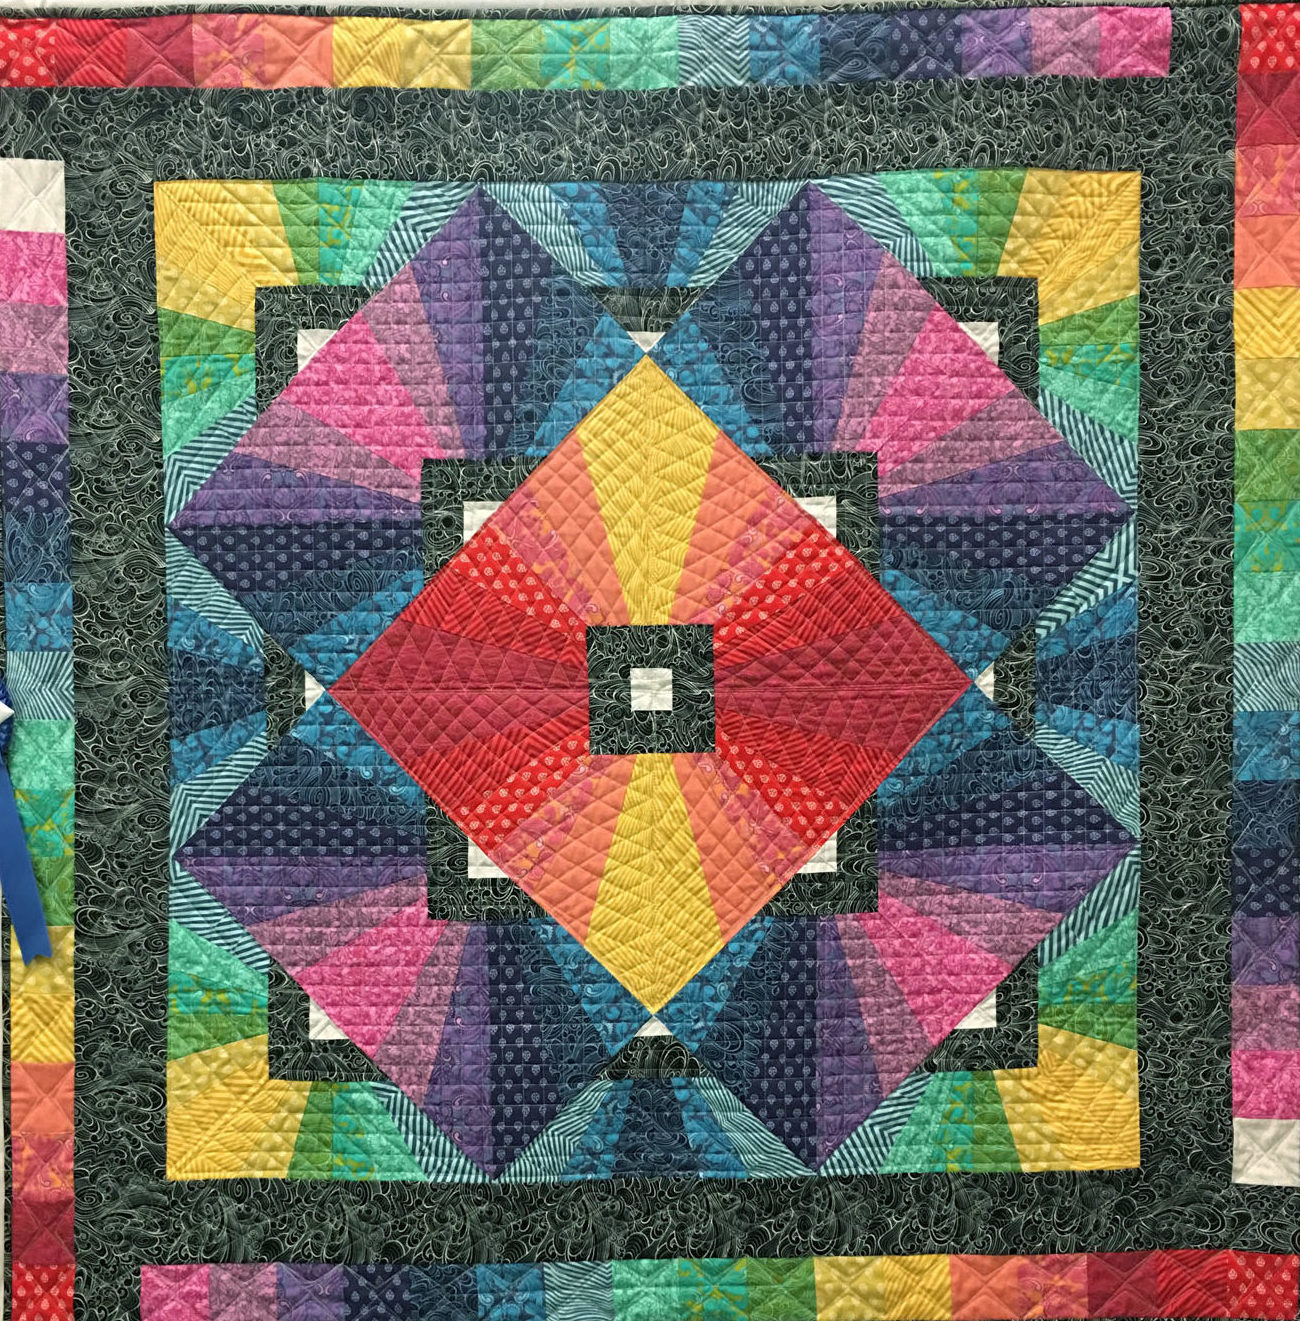 "306 ""Best Prism Ever"" by Marj Deupree, 1st place Med/Large Individual Quilt, 2018 Kitsap Quilt Show"